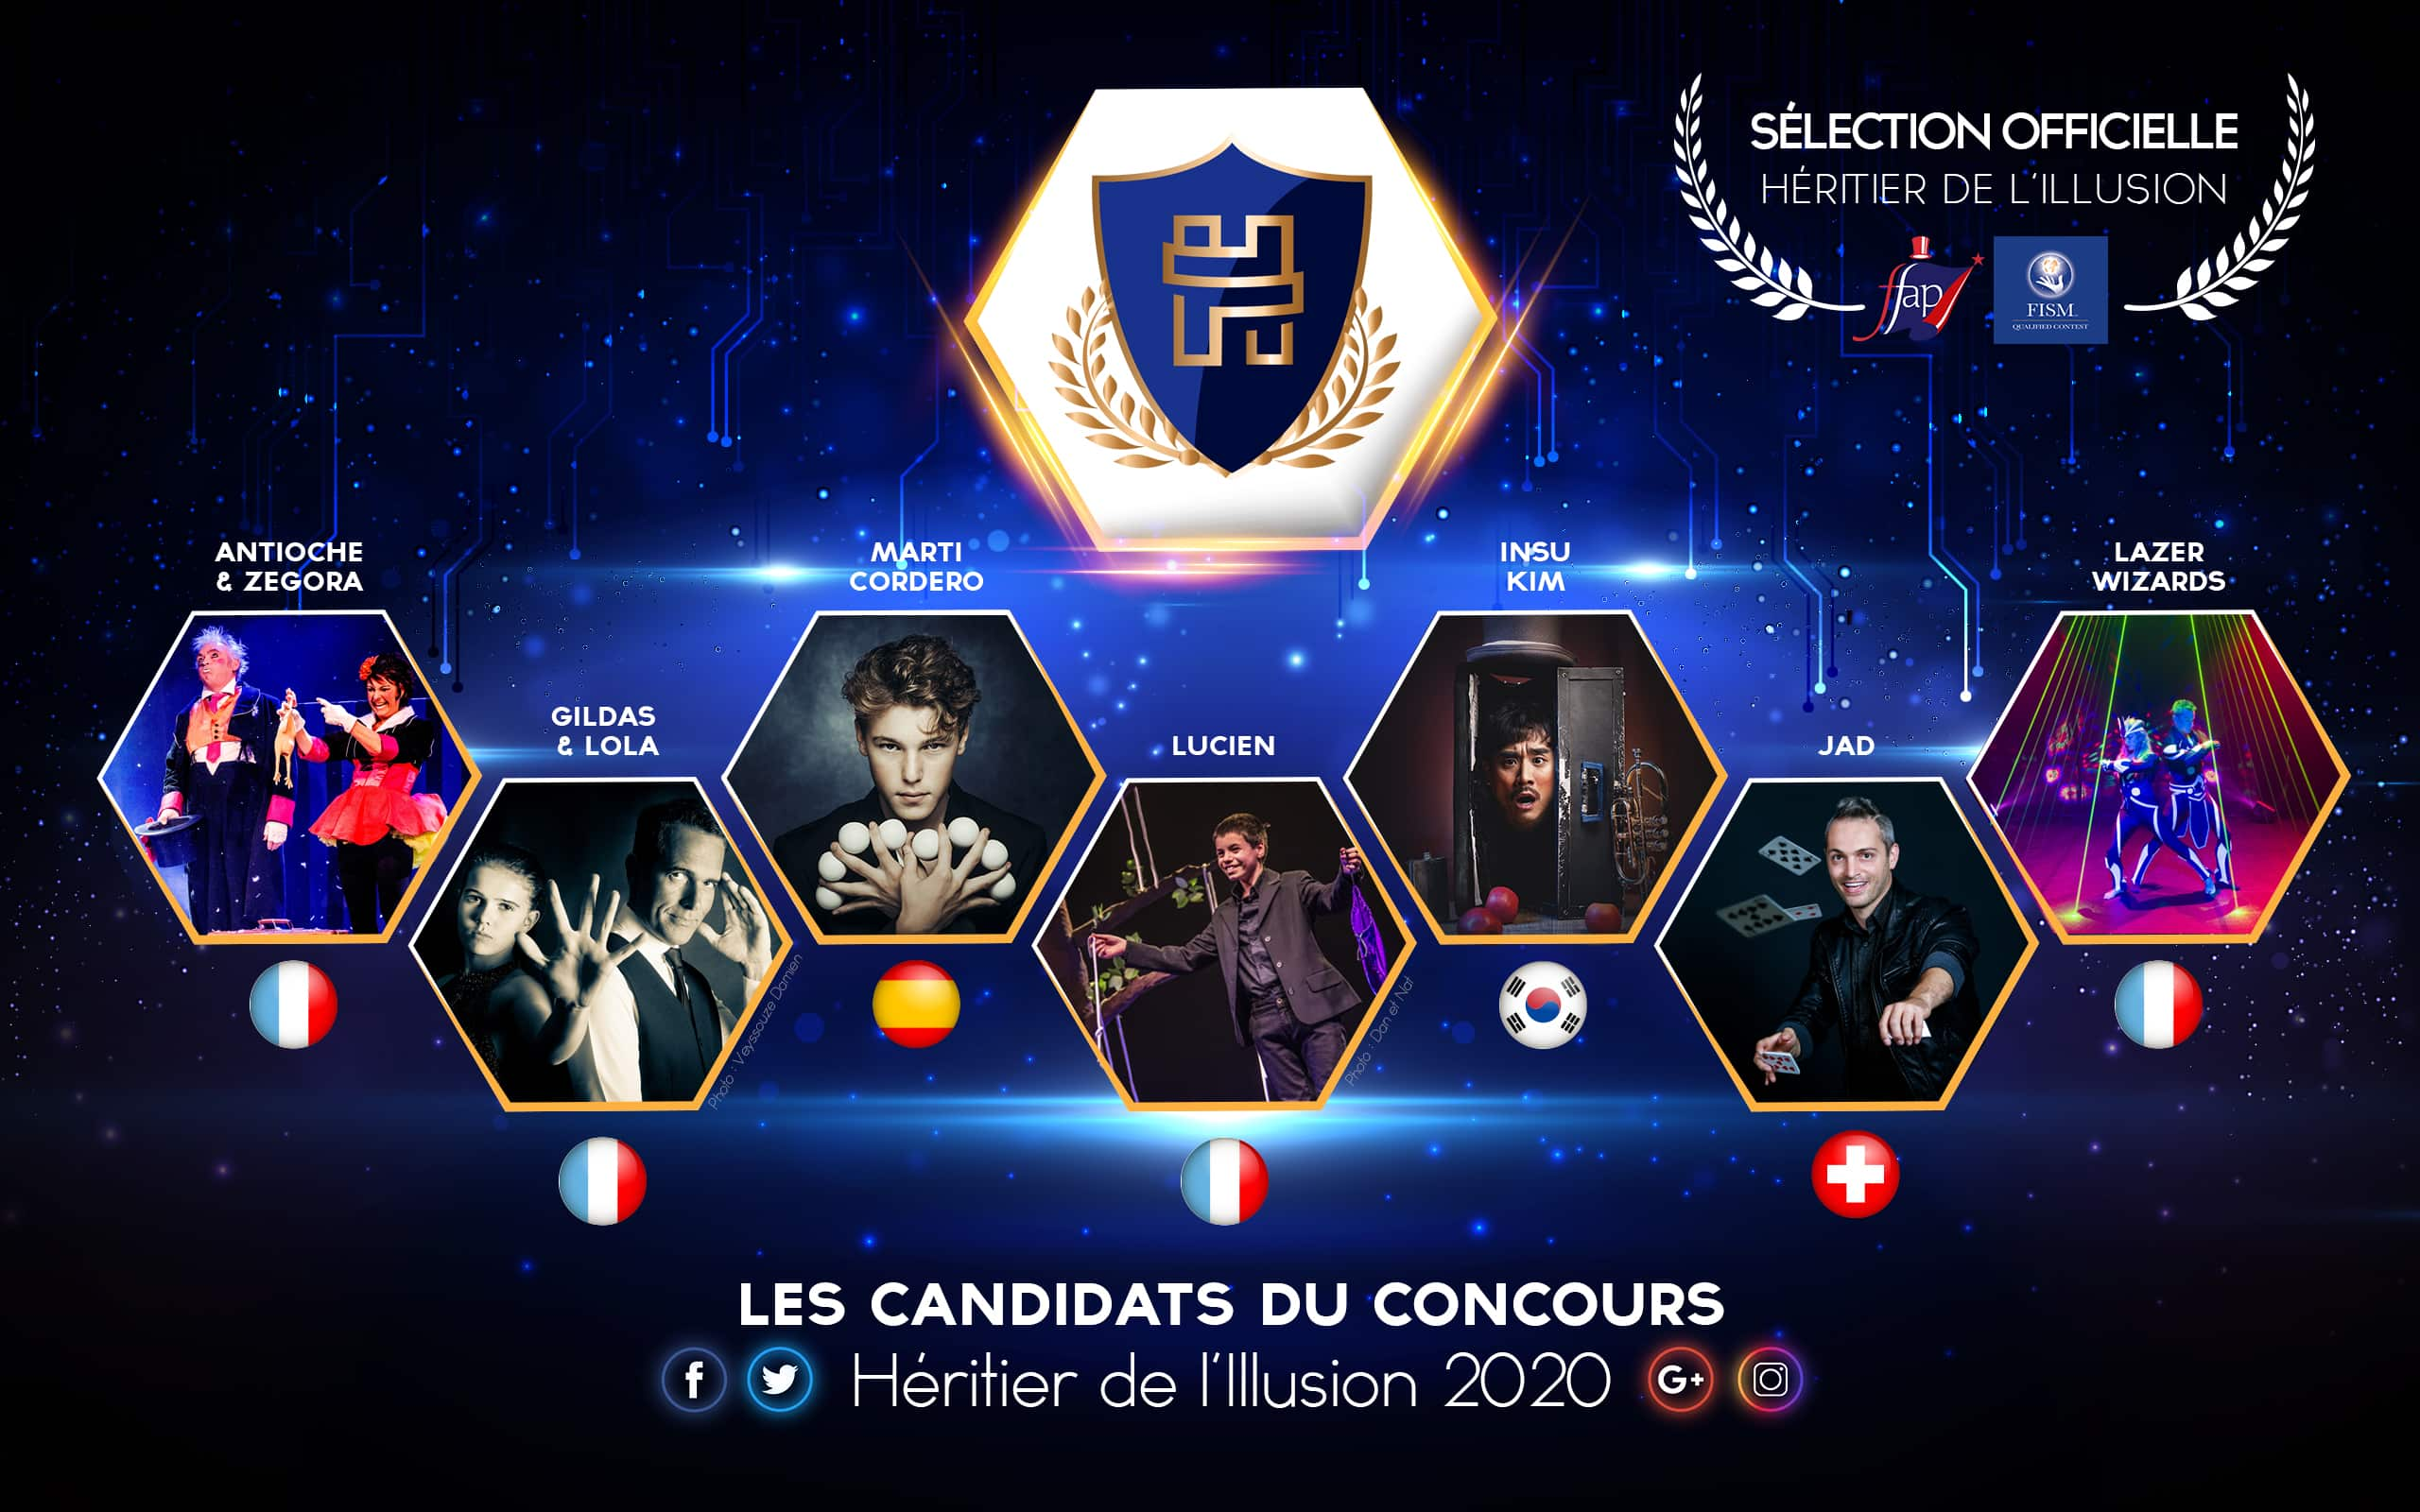 candidats sélection officielle 2020 International contest